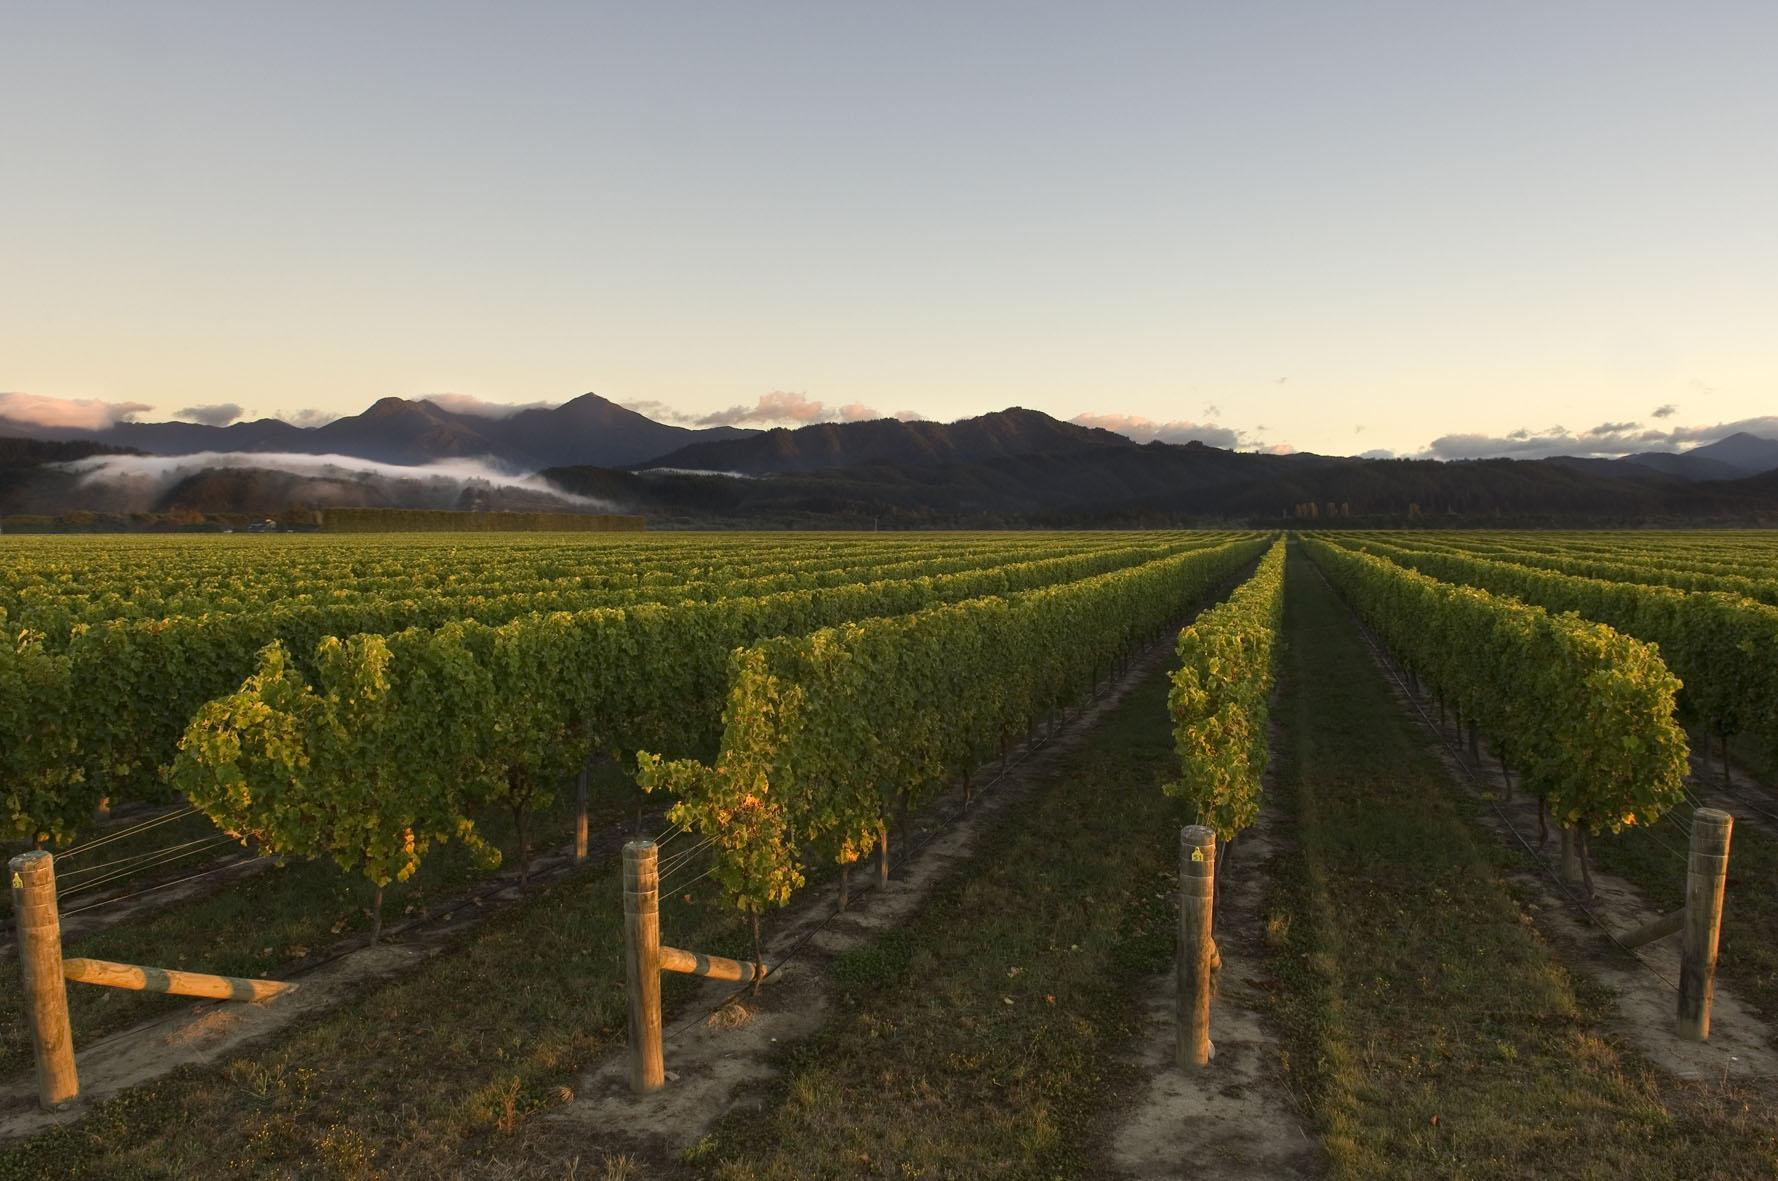 An Image of a New Zealand winery